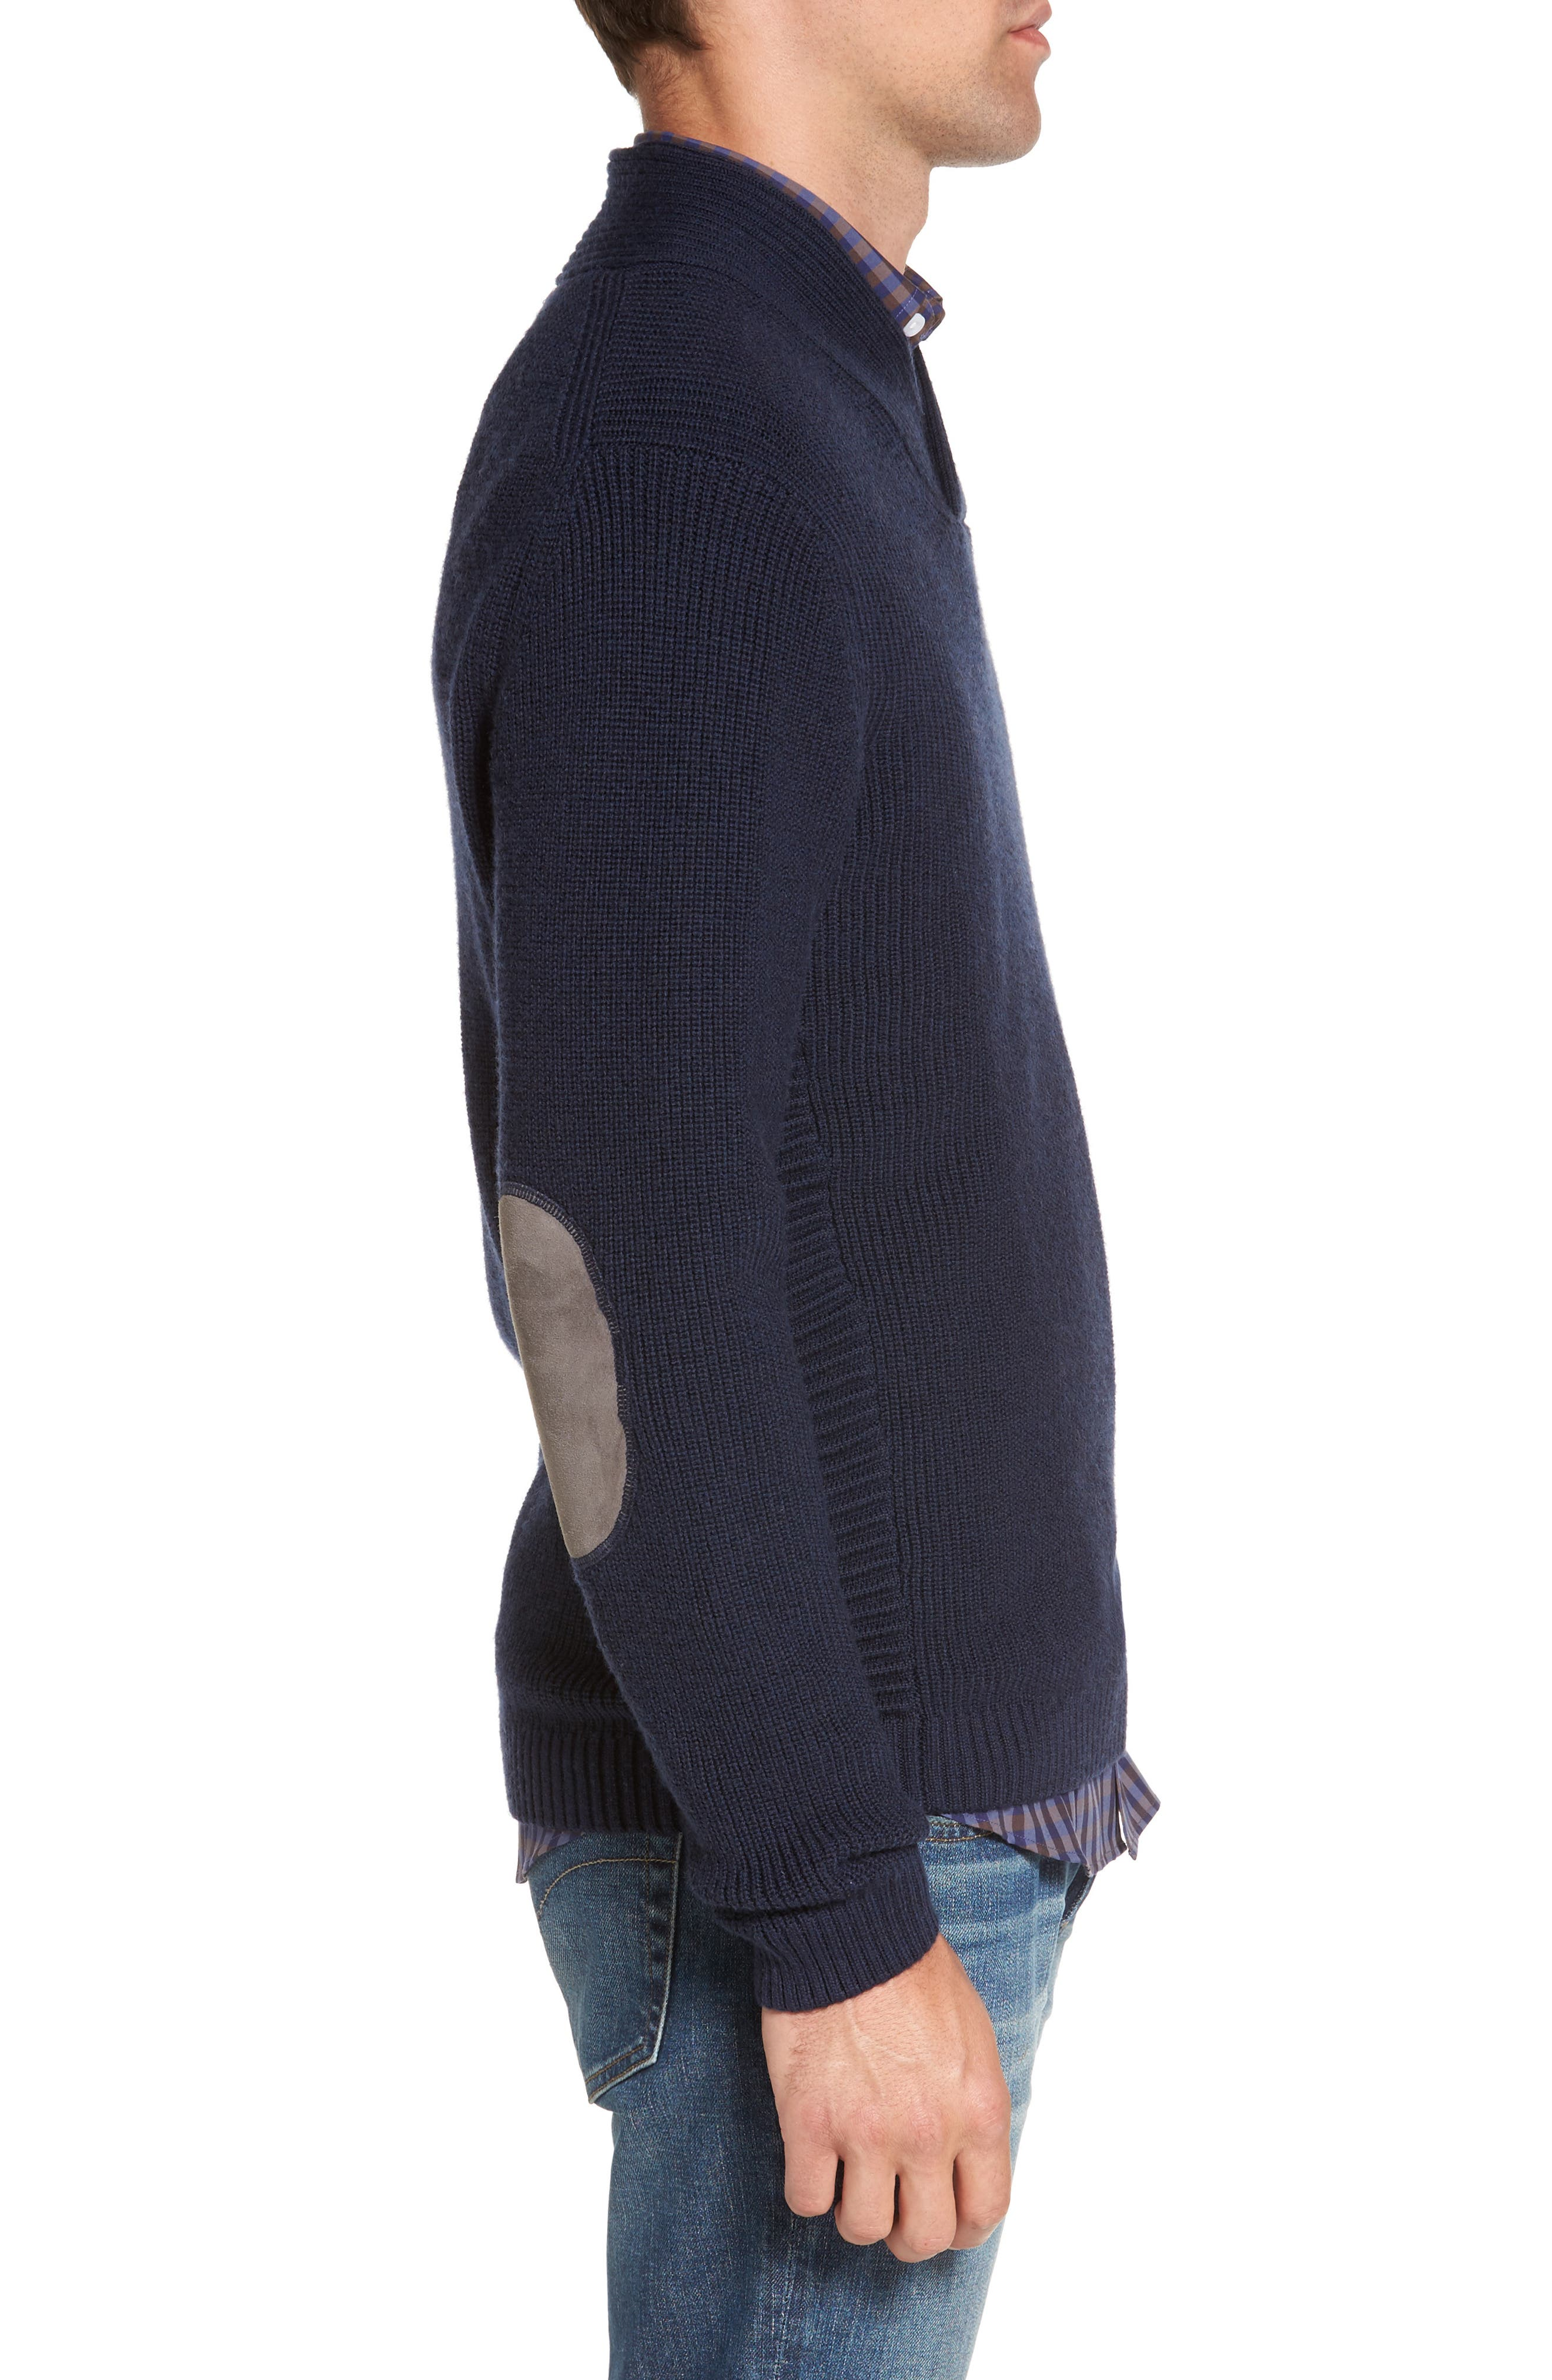 Charlesworth Suede Patch Merino Wool Sweater,                             Alternate thumbnail 3, color,                             Marine